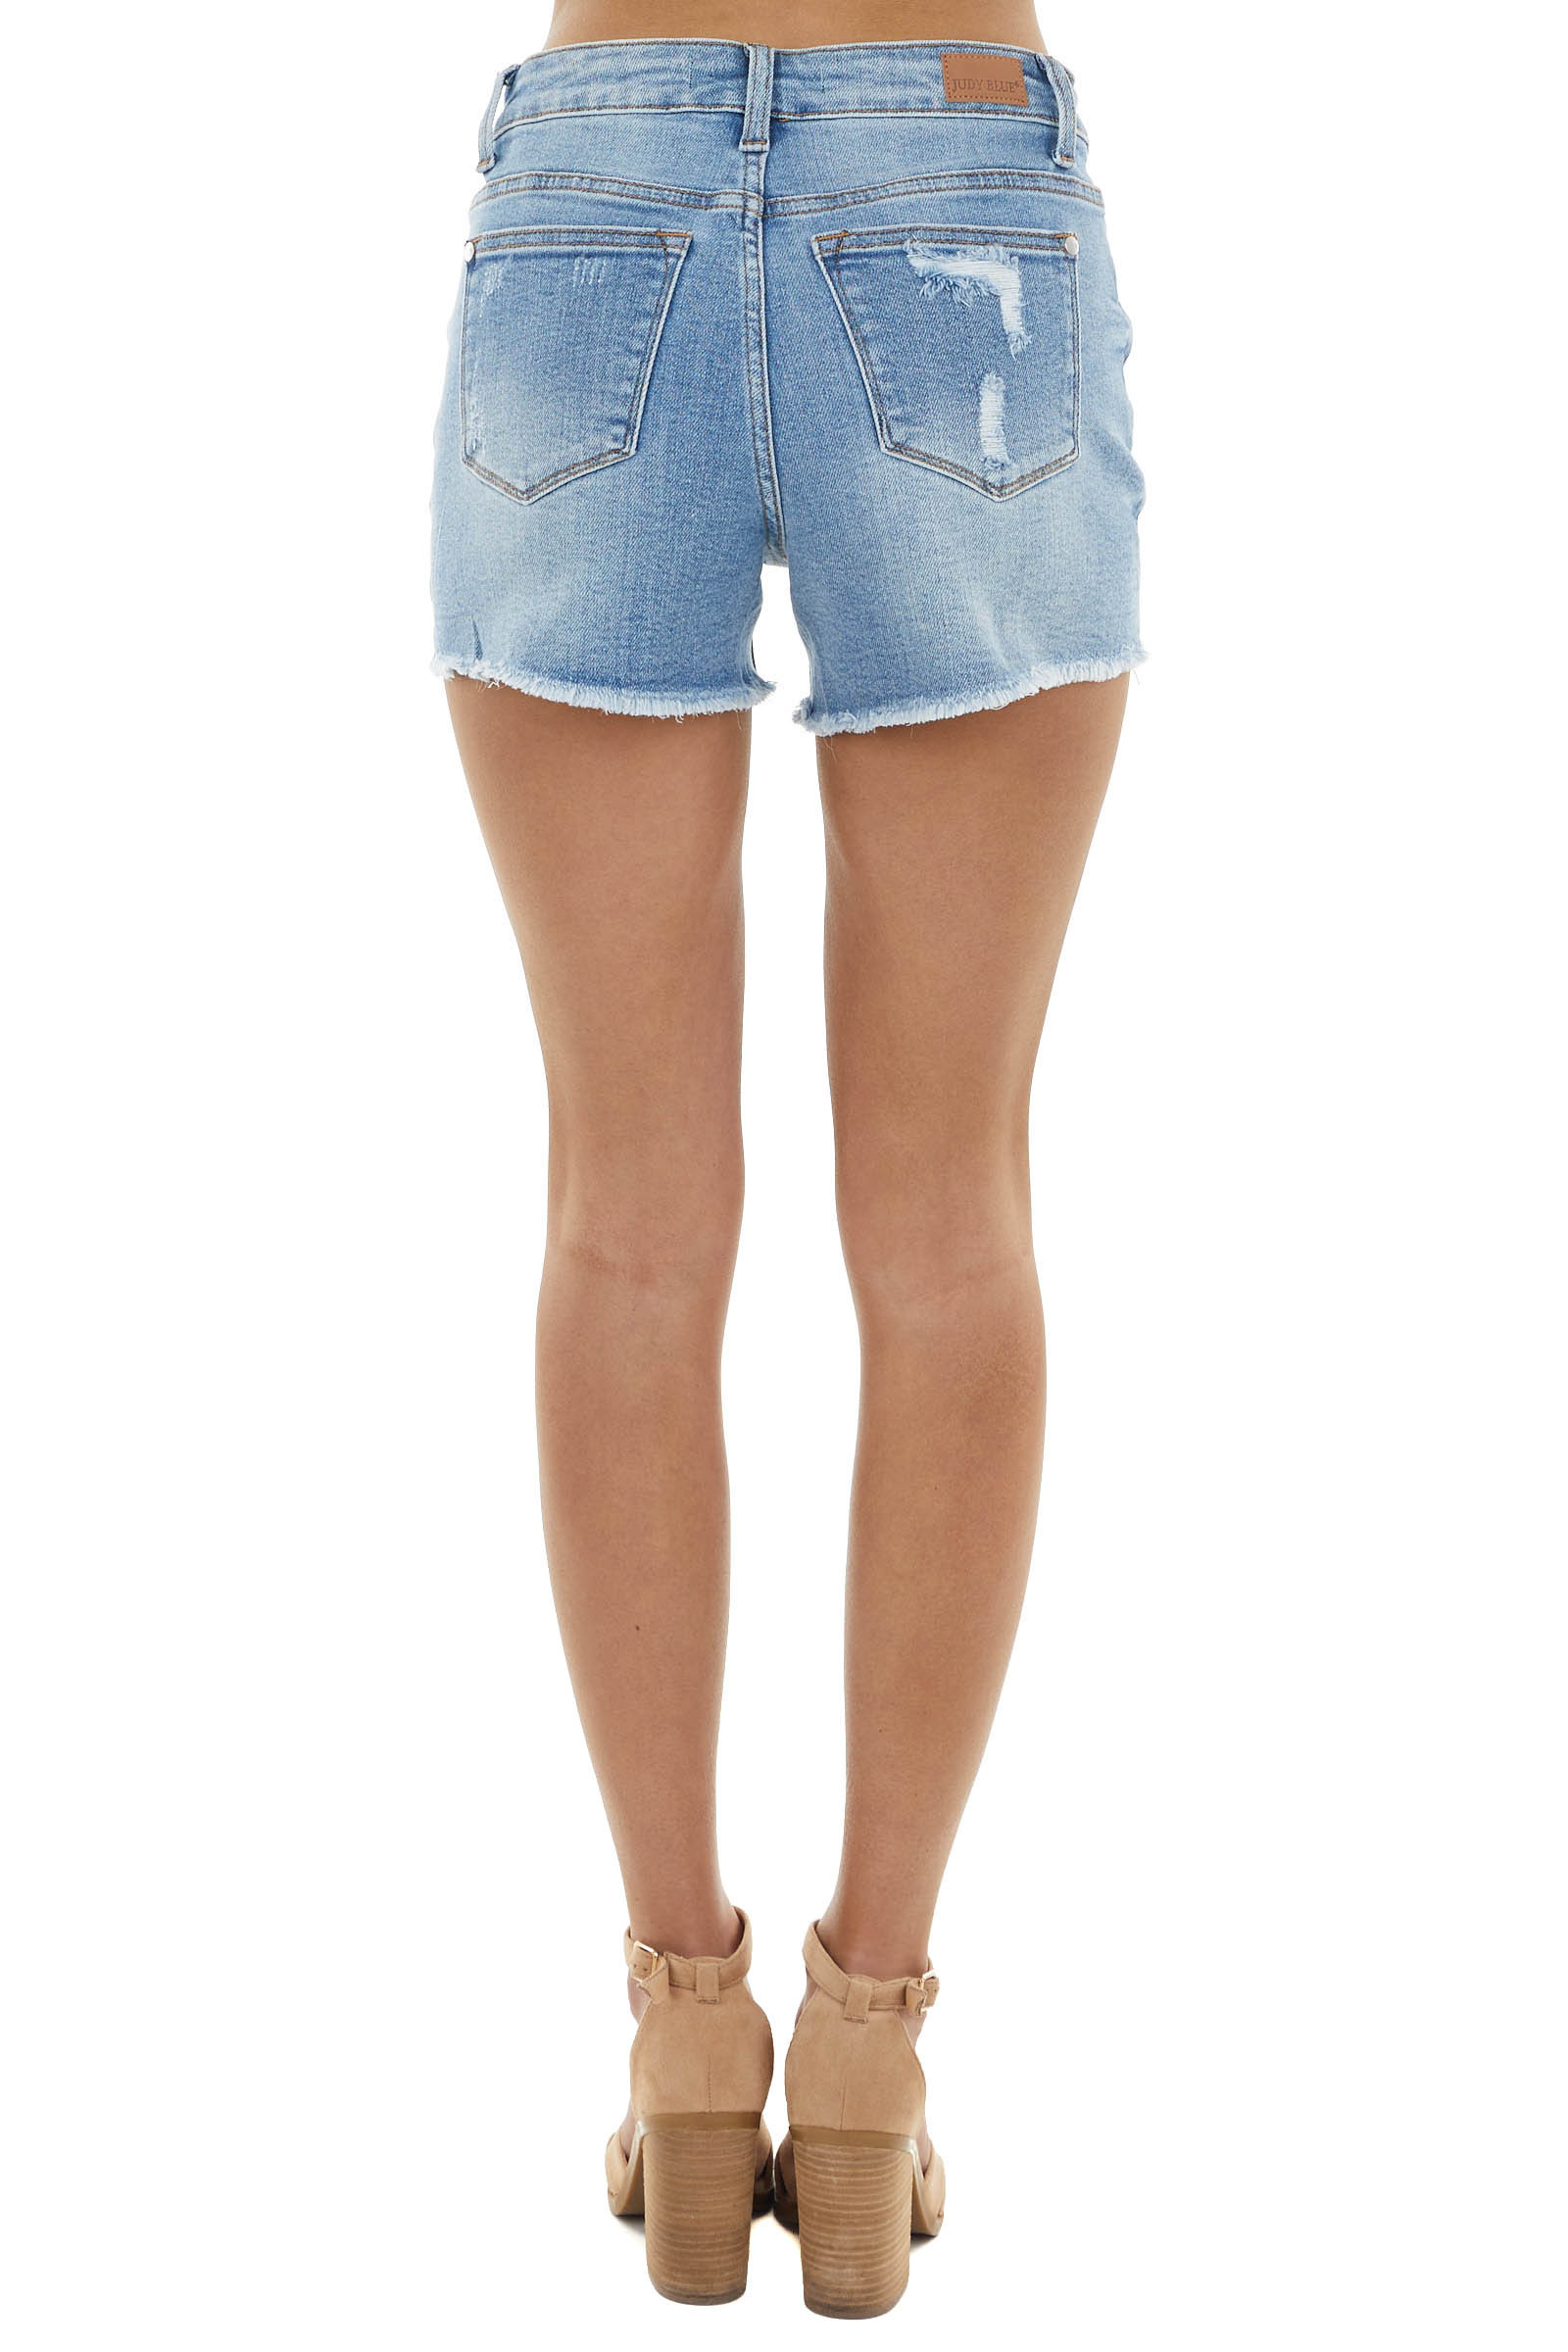 Medium Wash High Rise Distressed Shorts with Lemon Patches